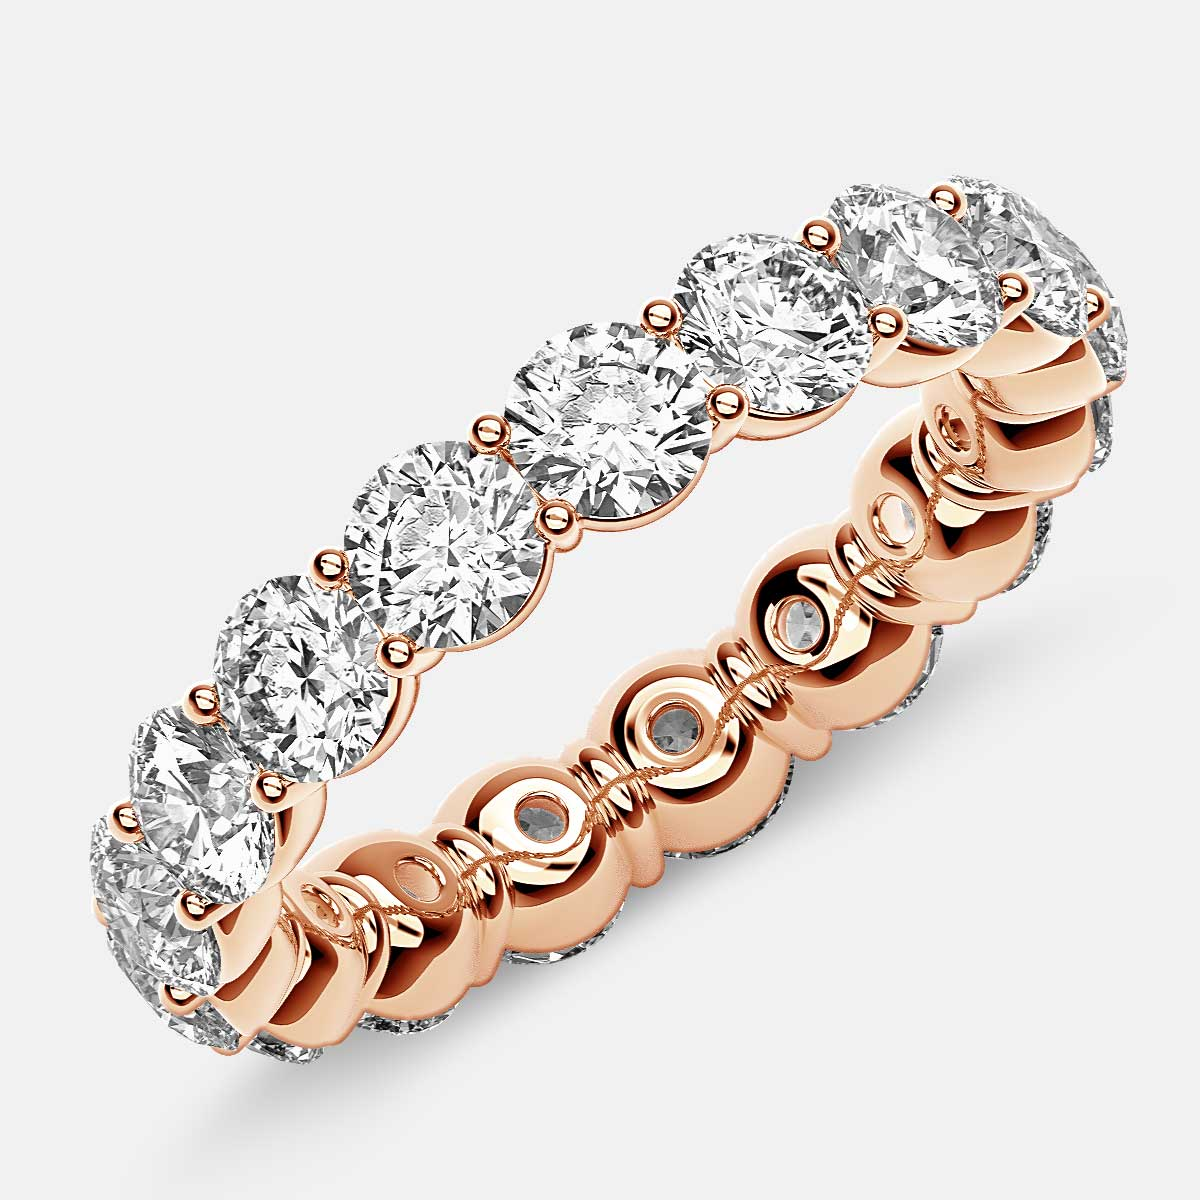 Classic Prong Set Eternity Ring with Round Diamonds in 18k Rose Gold